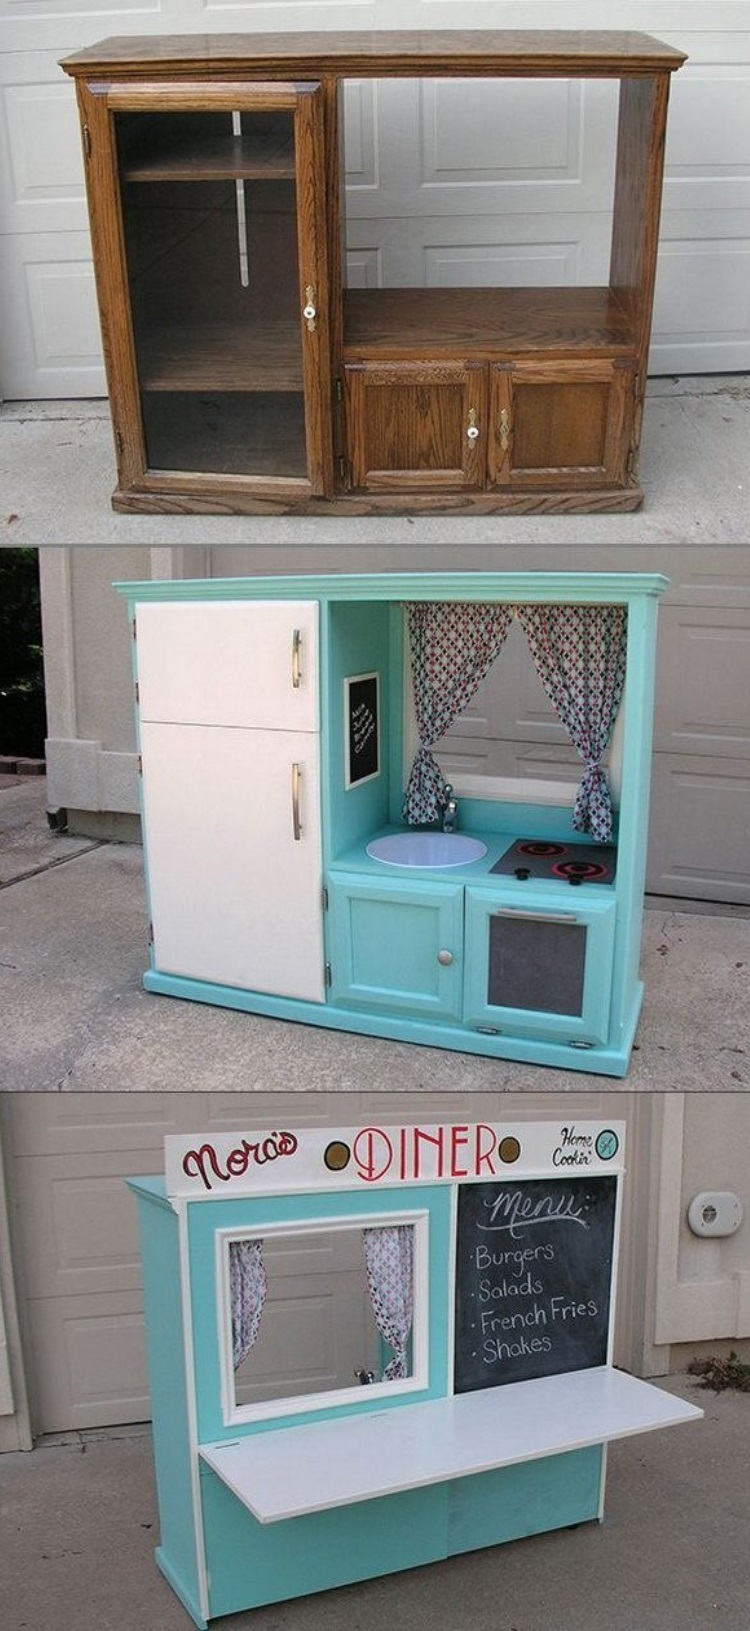 Diy Kid's Kitchen From Old Cabinet